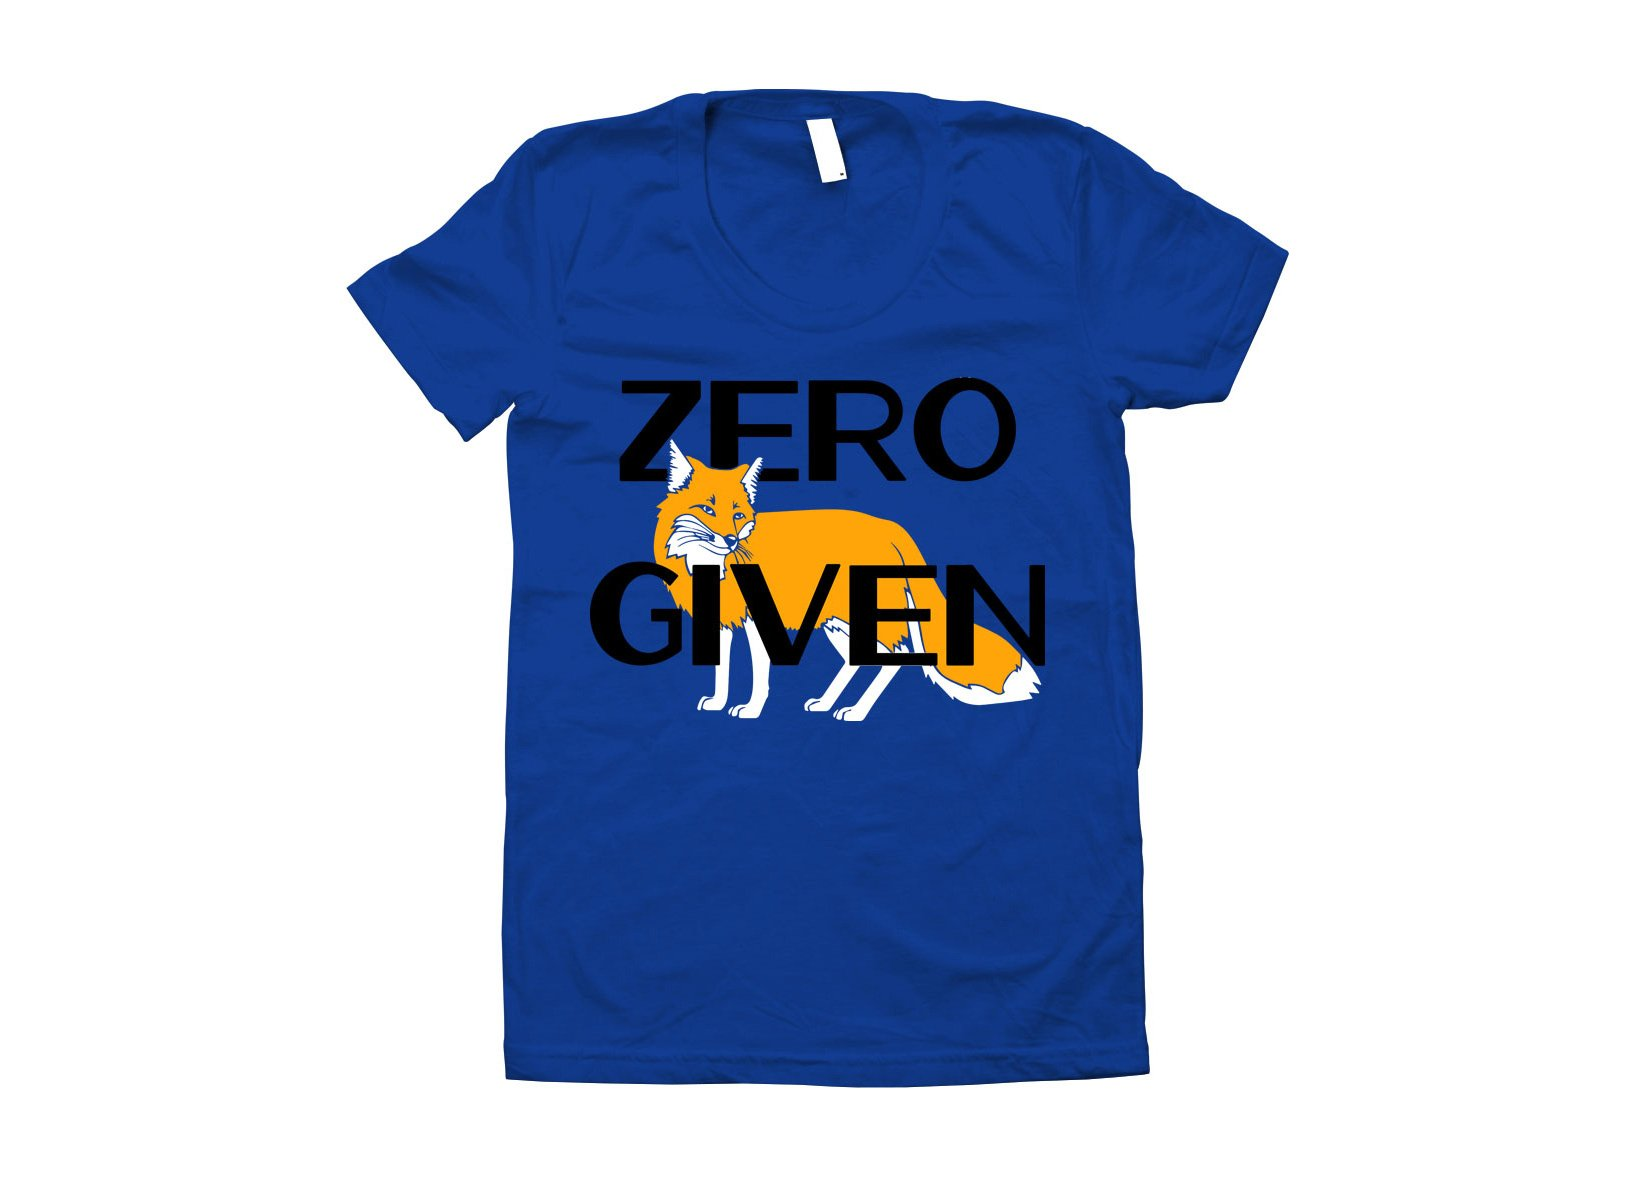 Zero Fox Given on Juniors T-Shirt